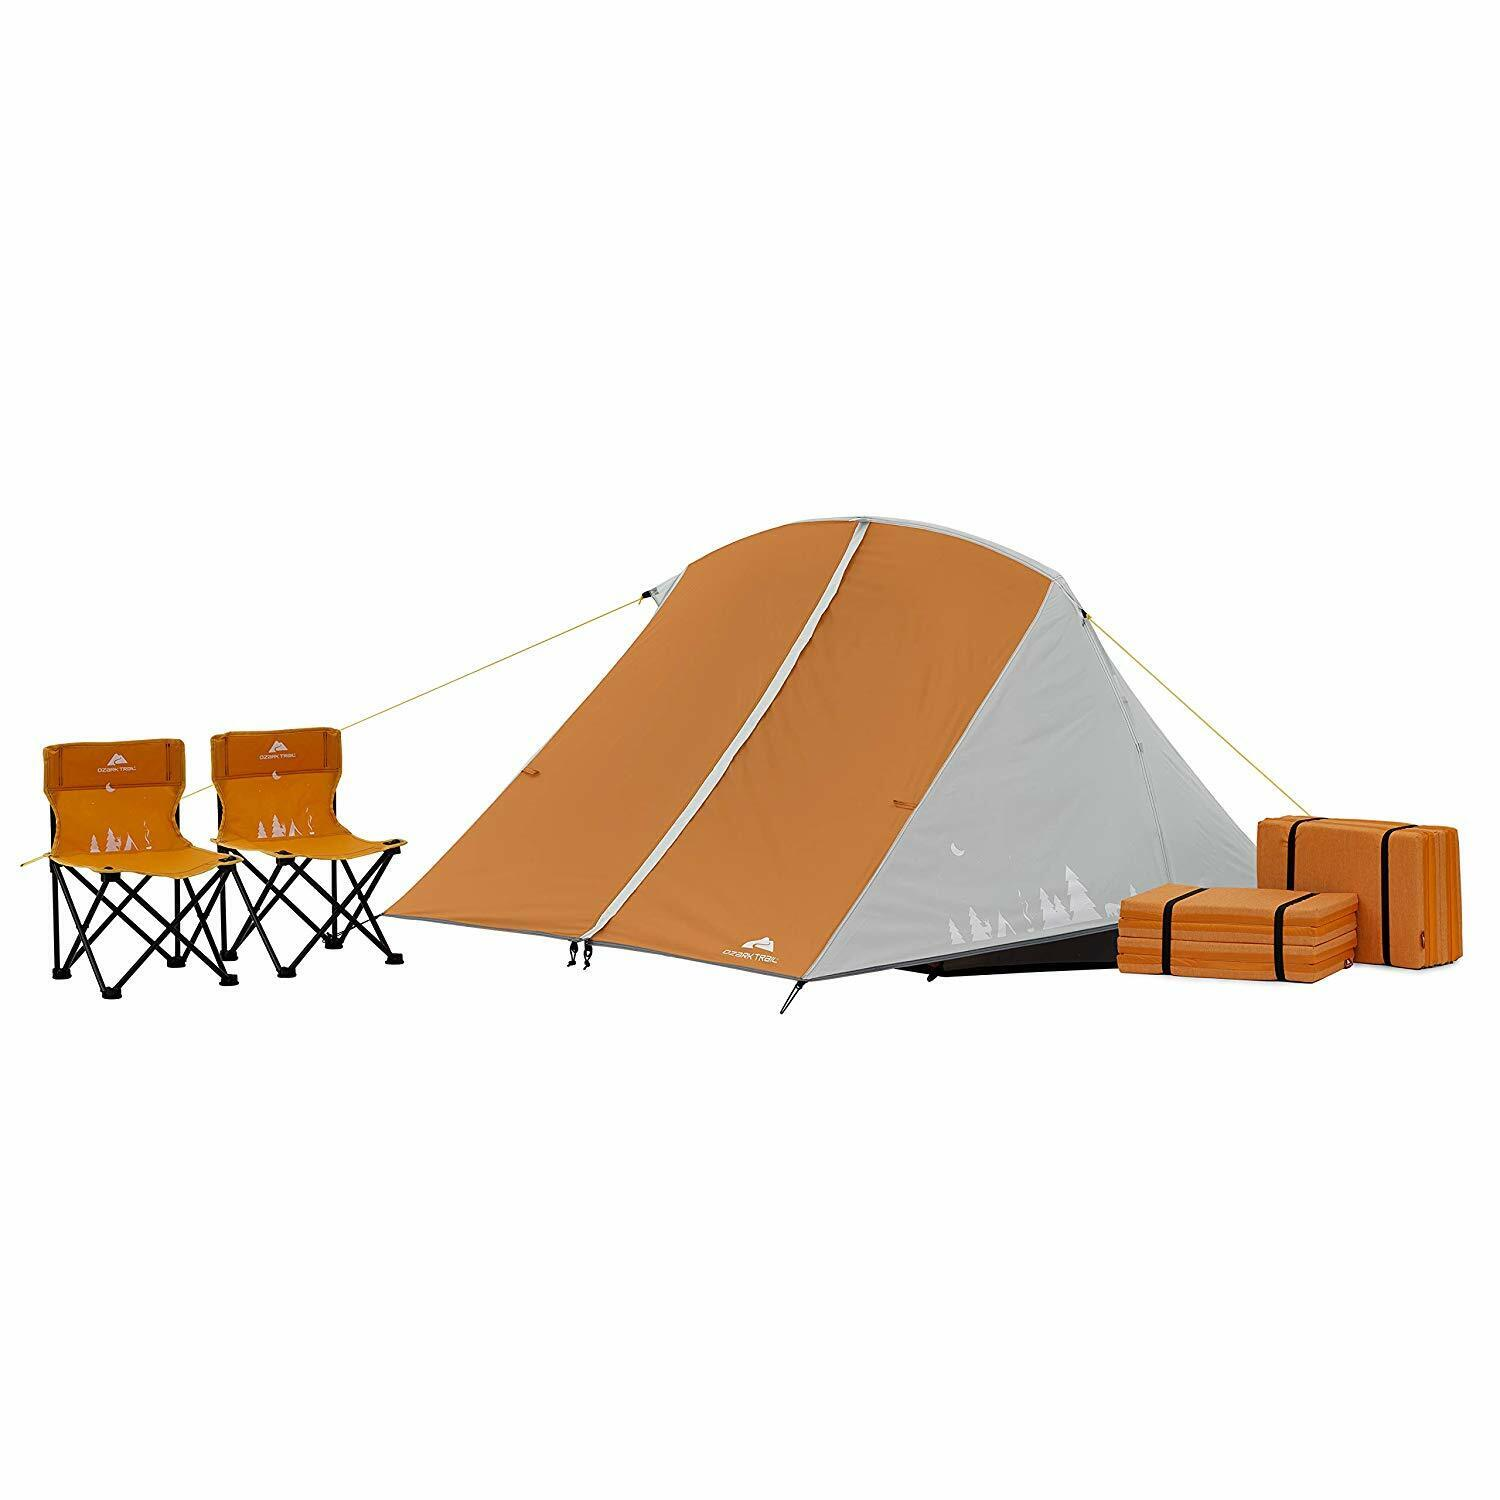 Kids Camping Tent Bundle 3 Person Quad Chairs Nap Pads Carry Bag Sleep Over Camp